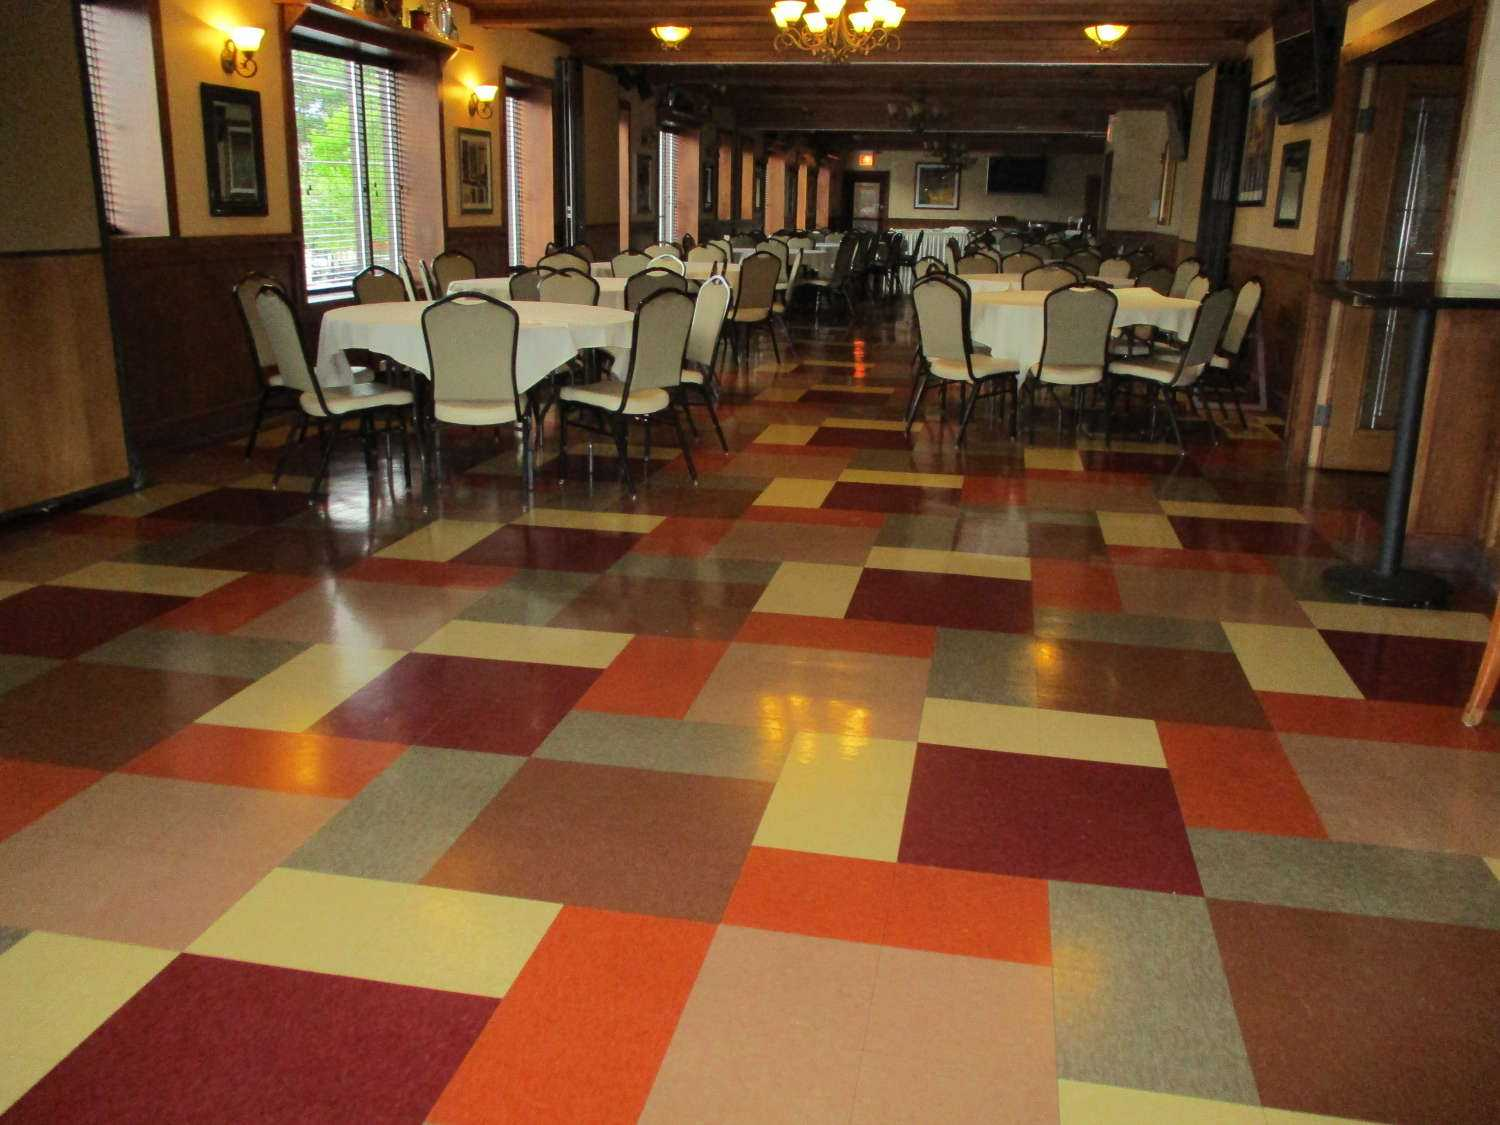 Floor in restaurant after Andy's restaurant cleaning services chicago